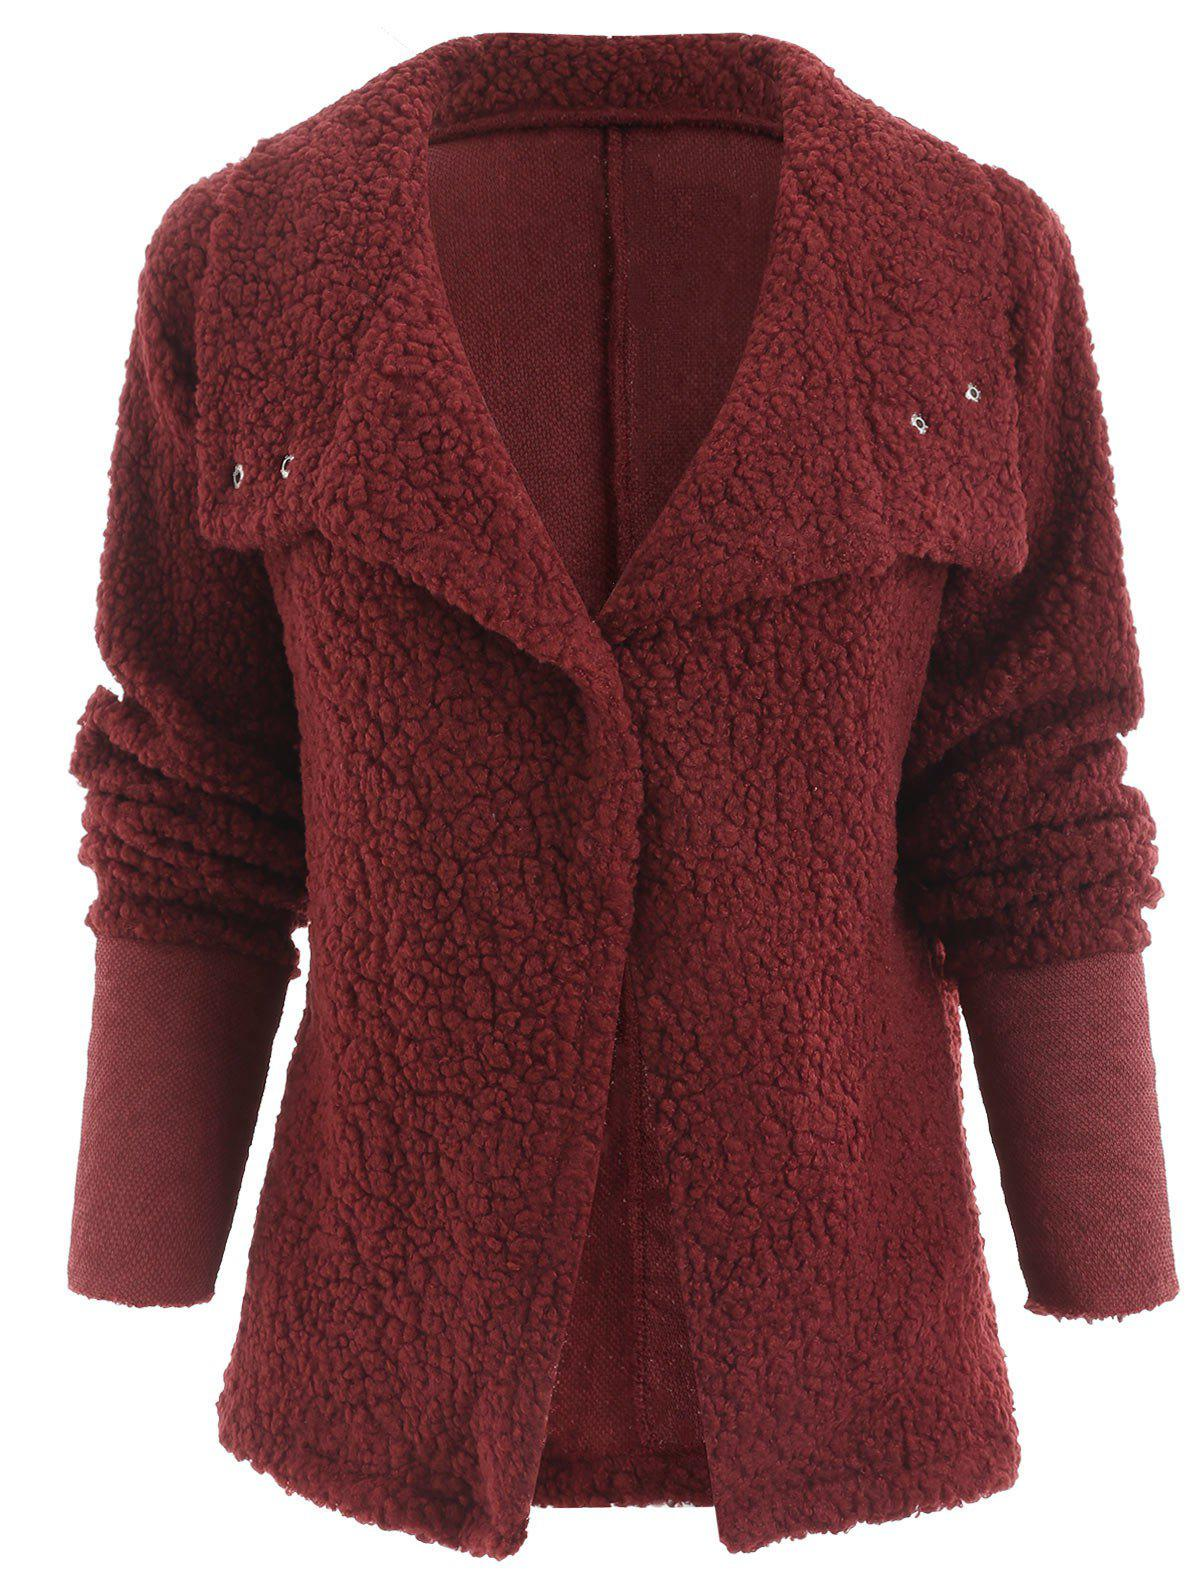 Buttons Fuzzy Coat - RED XL